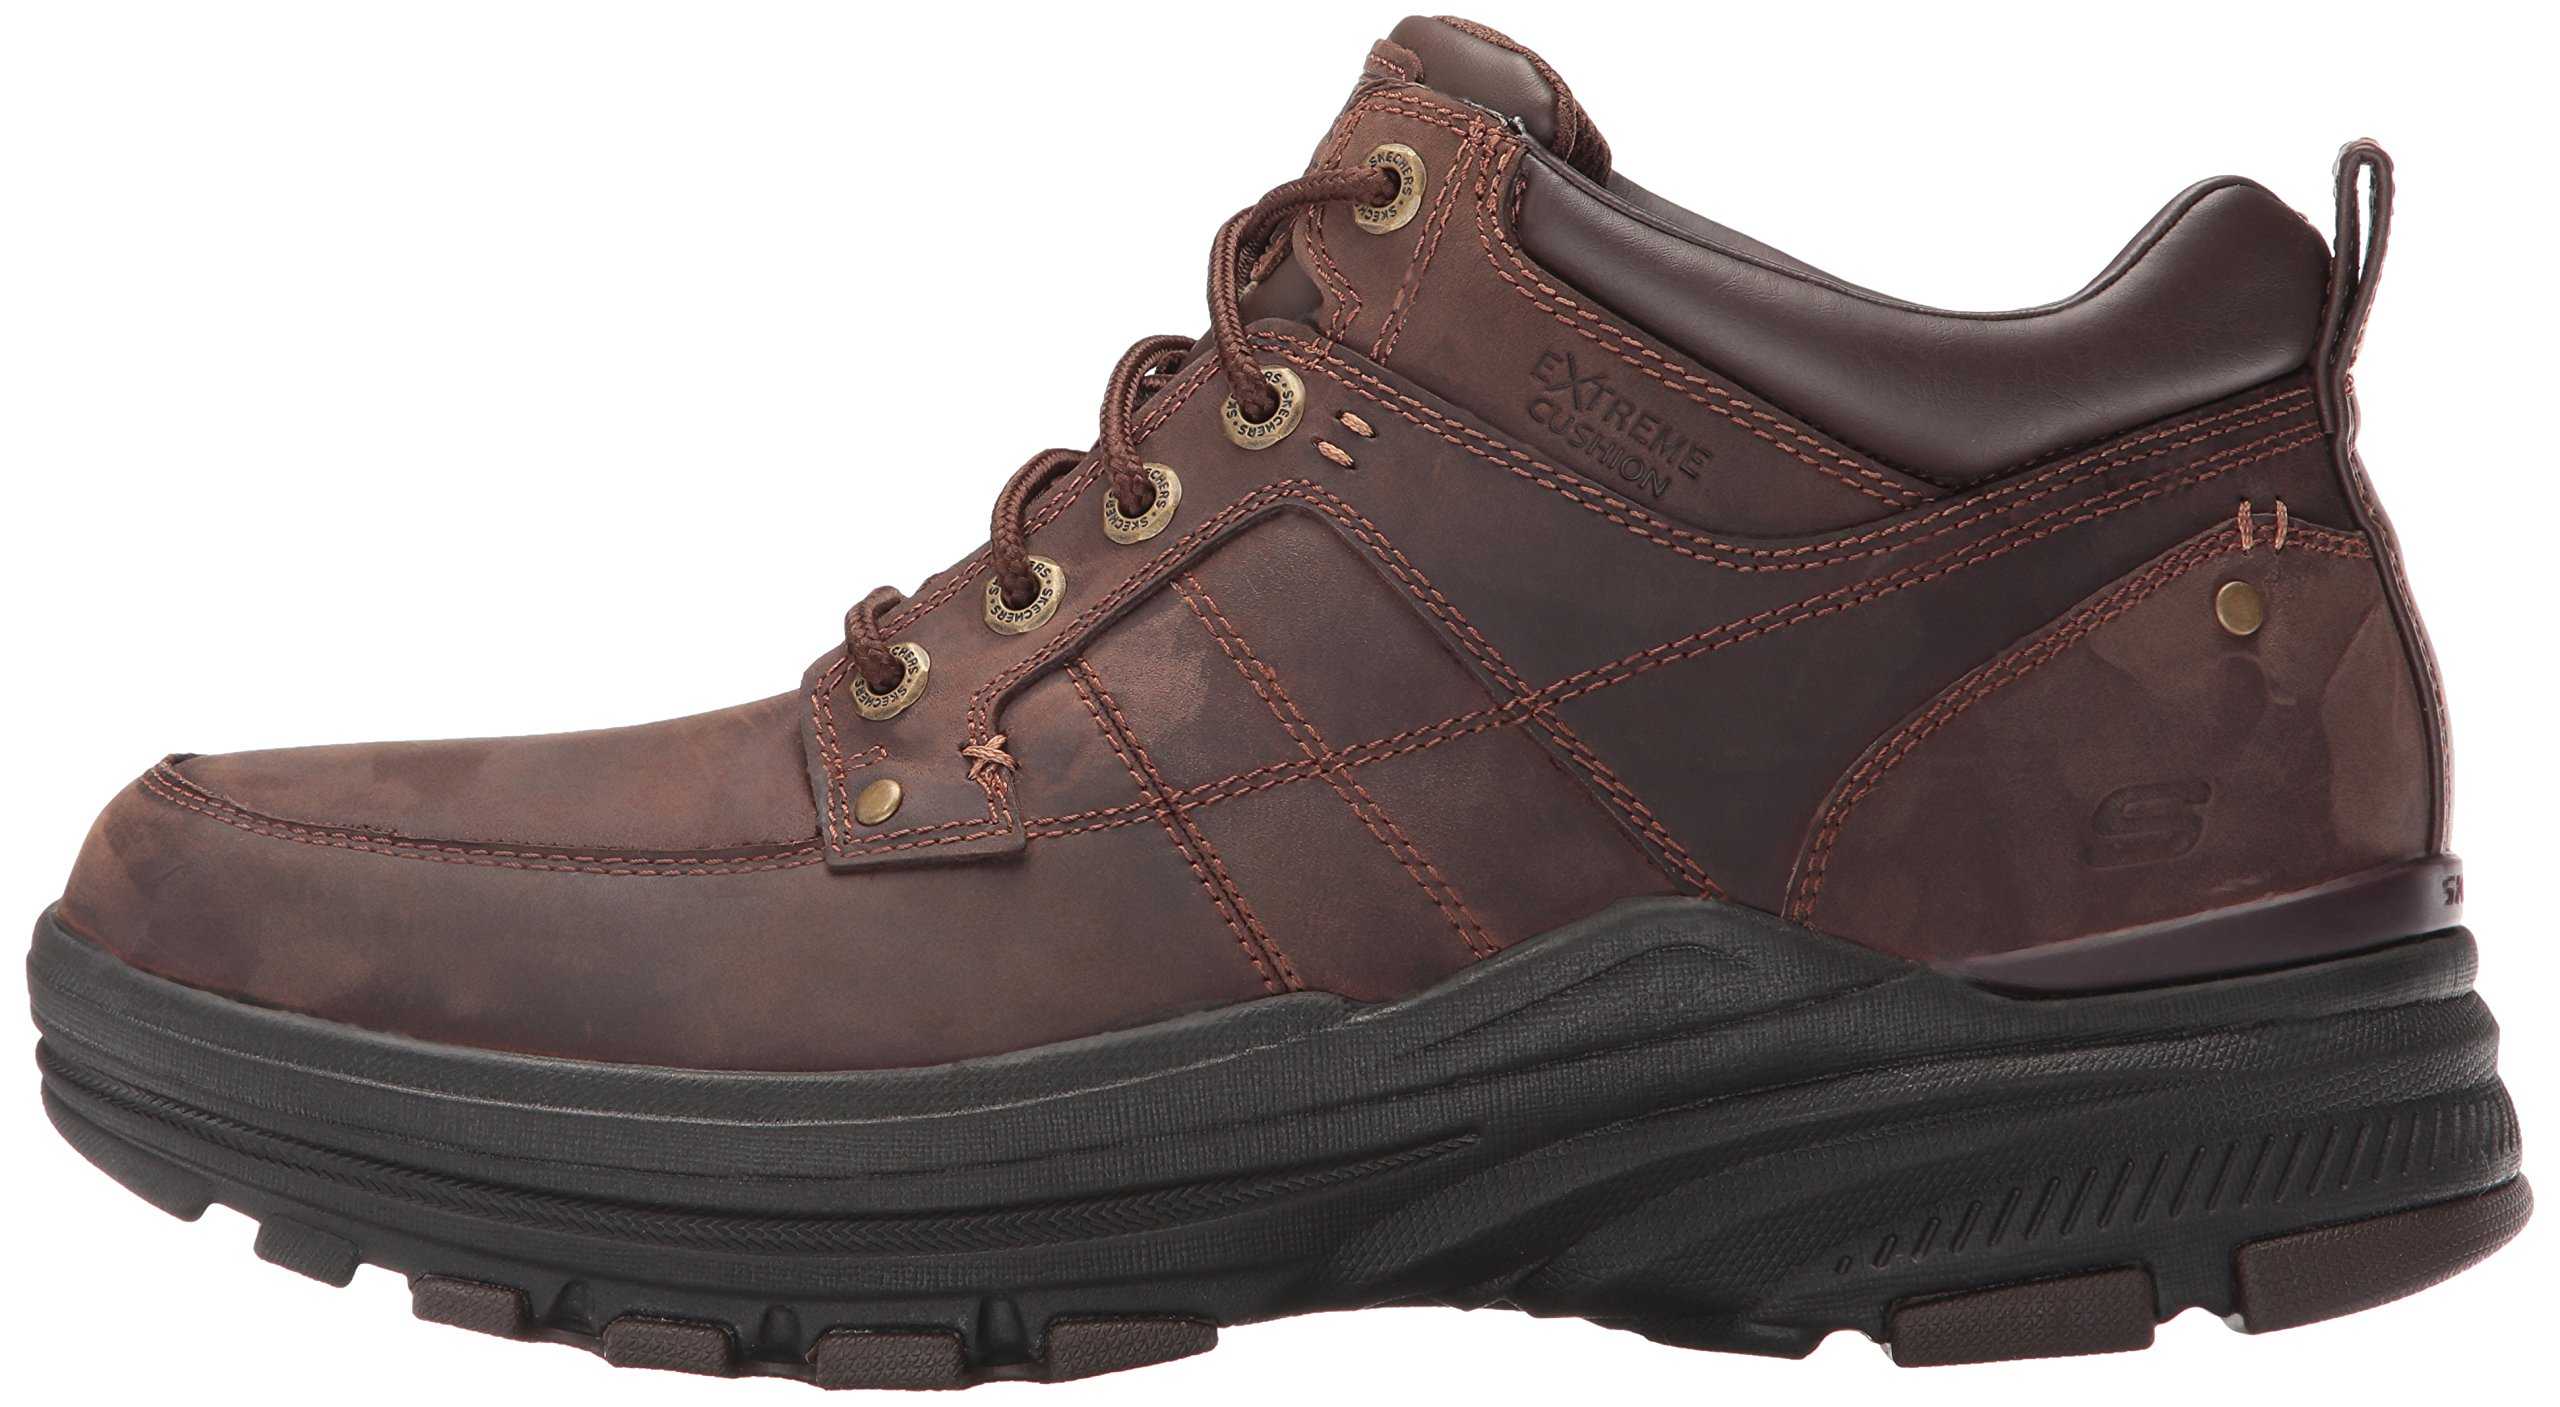 Skechers Men's Holdren Lender Chukka Boot